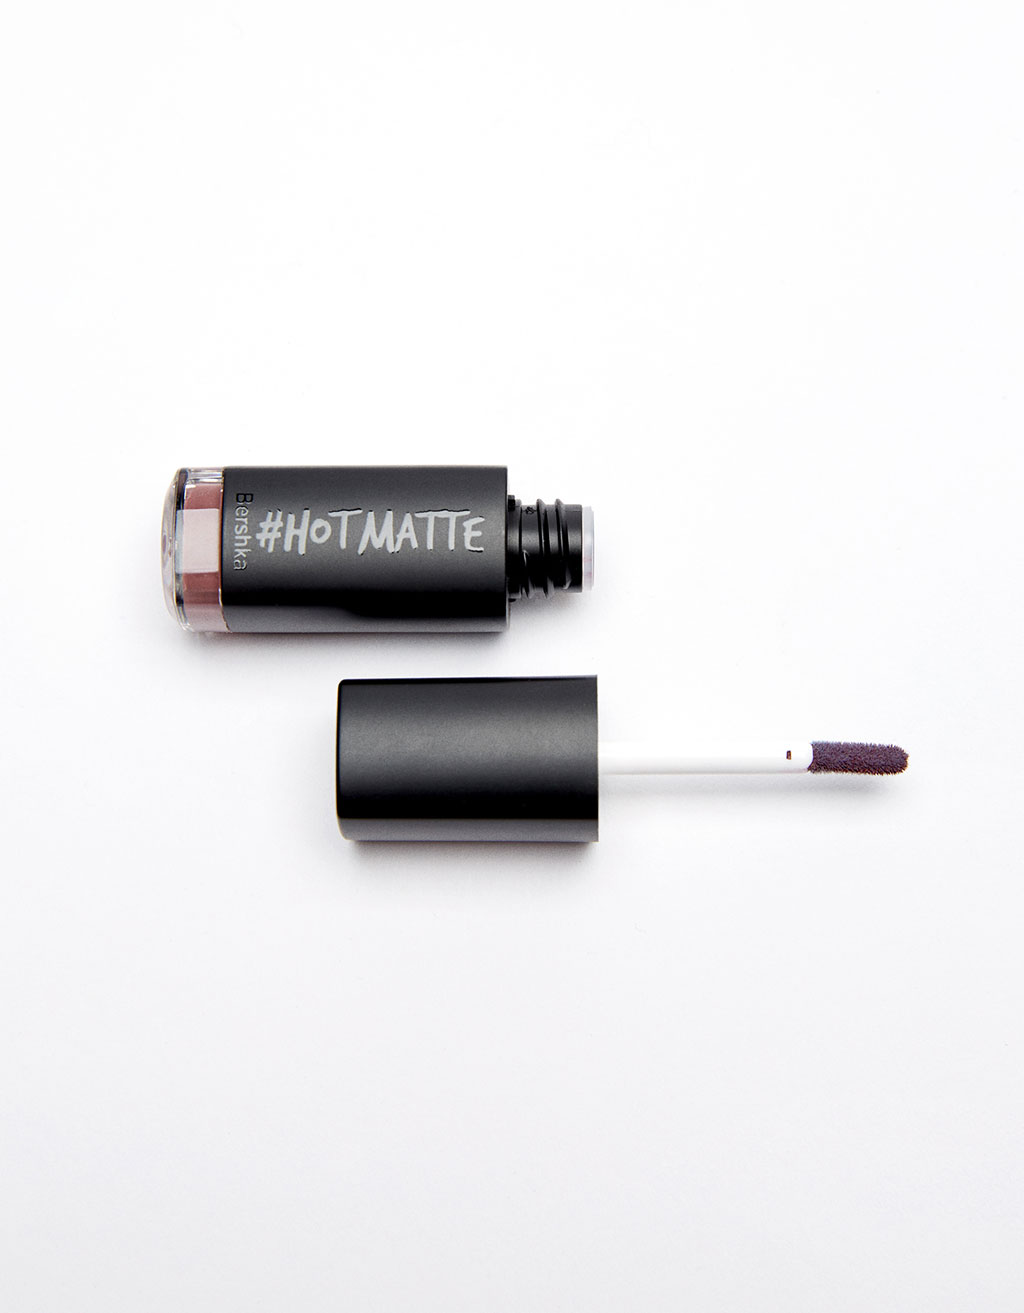 #hotmatte Rossetto liquido ultra mate